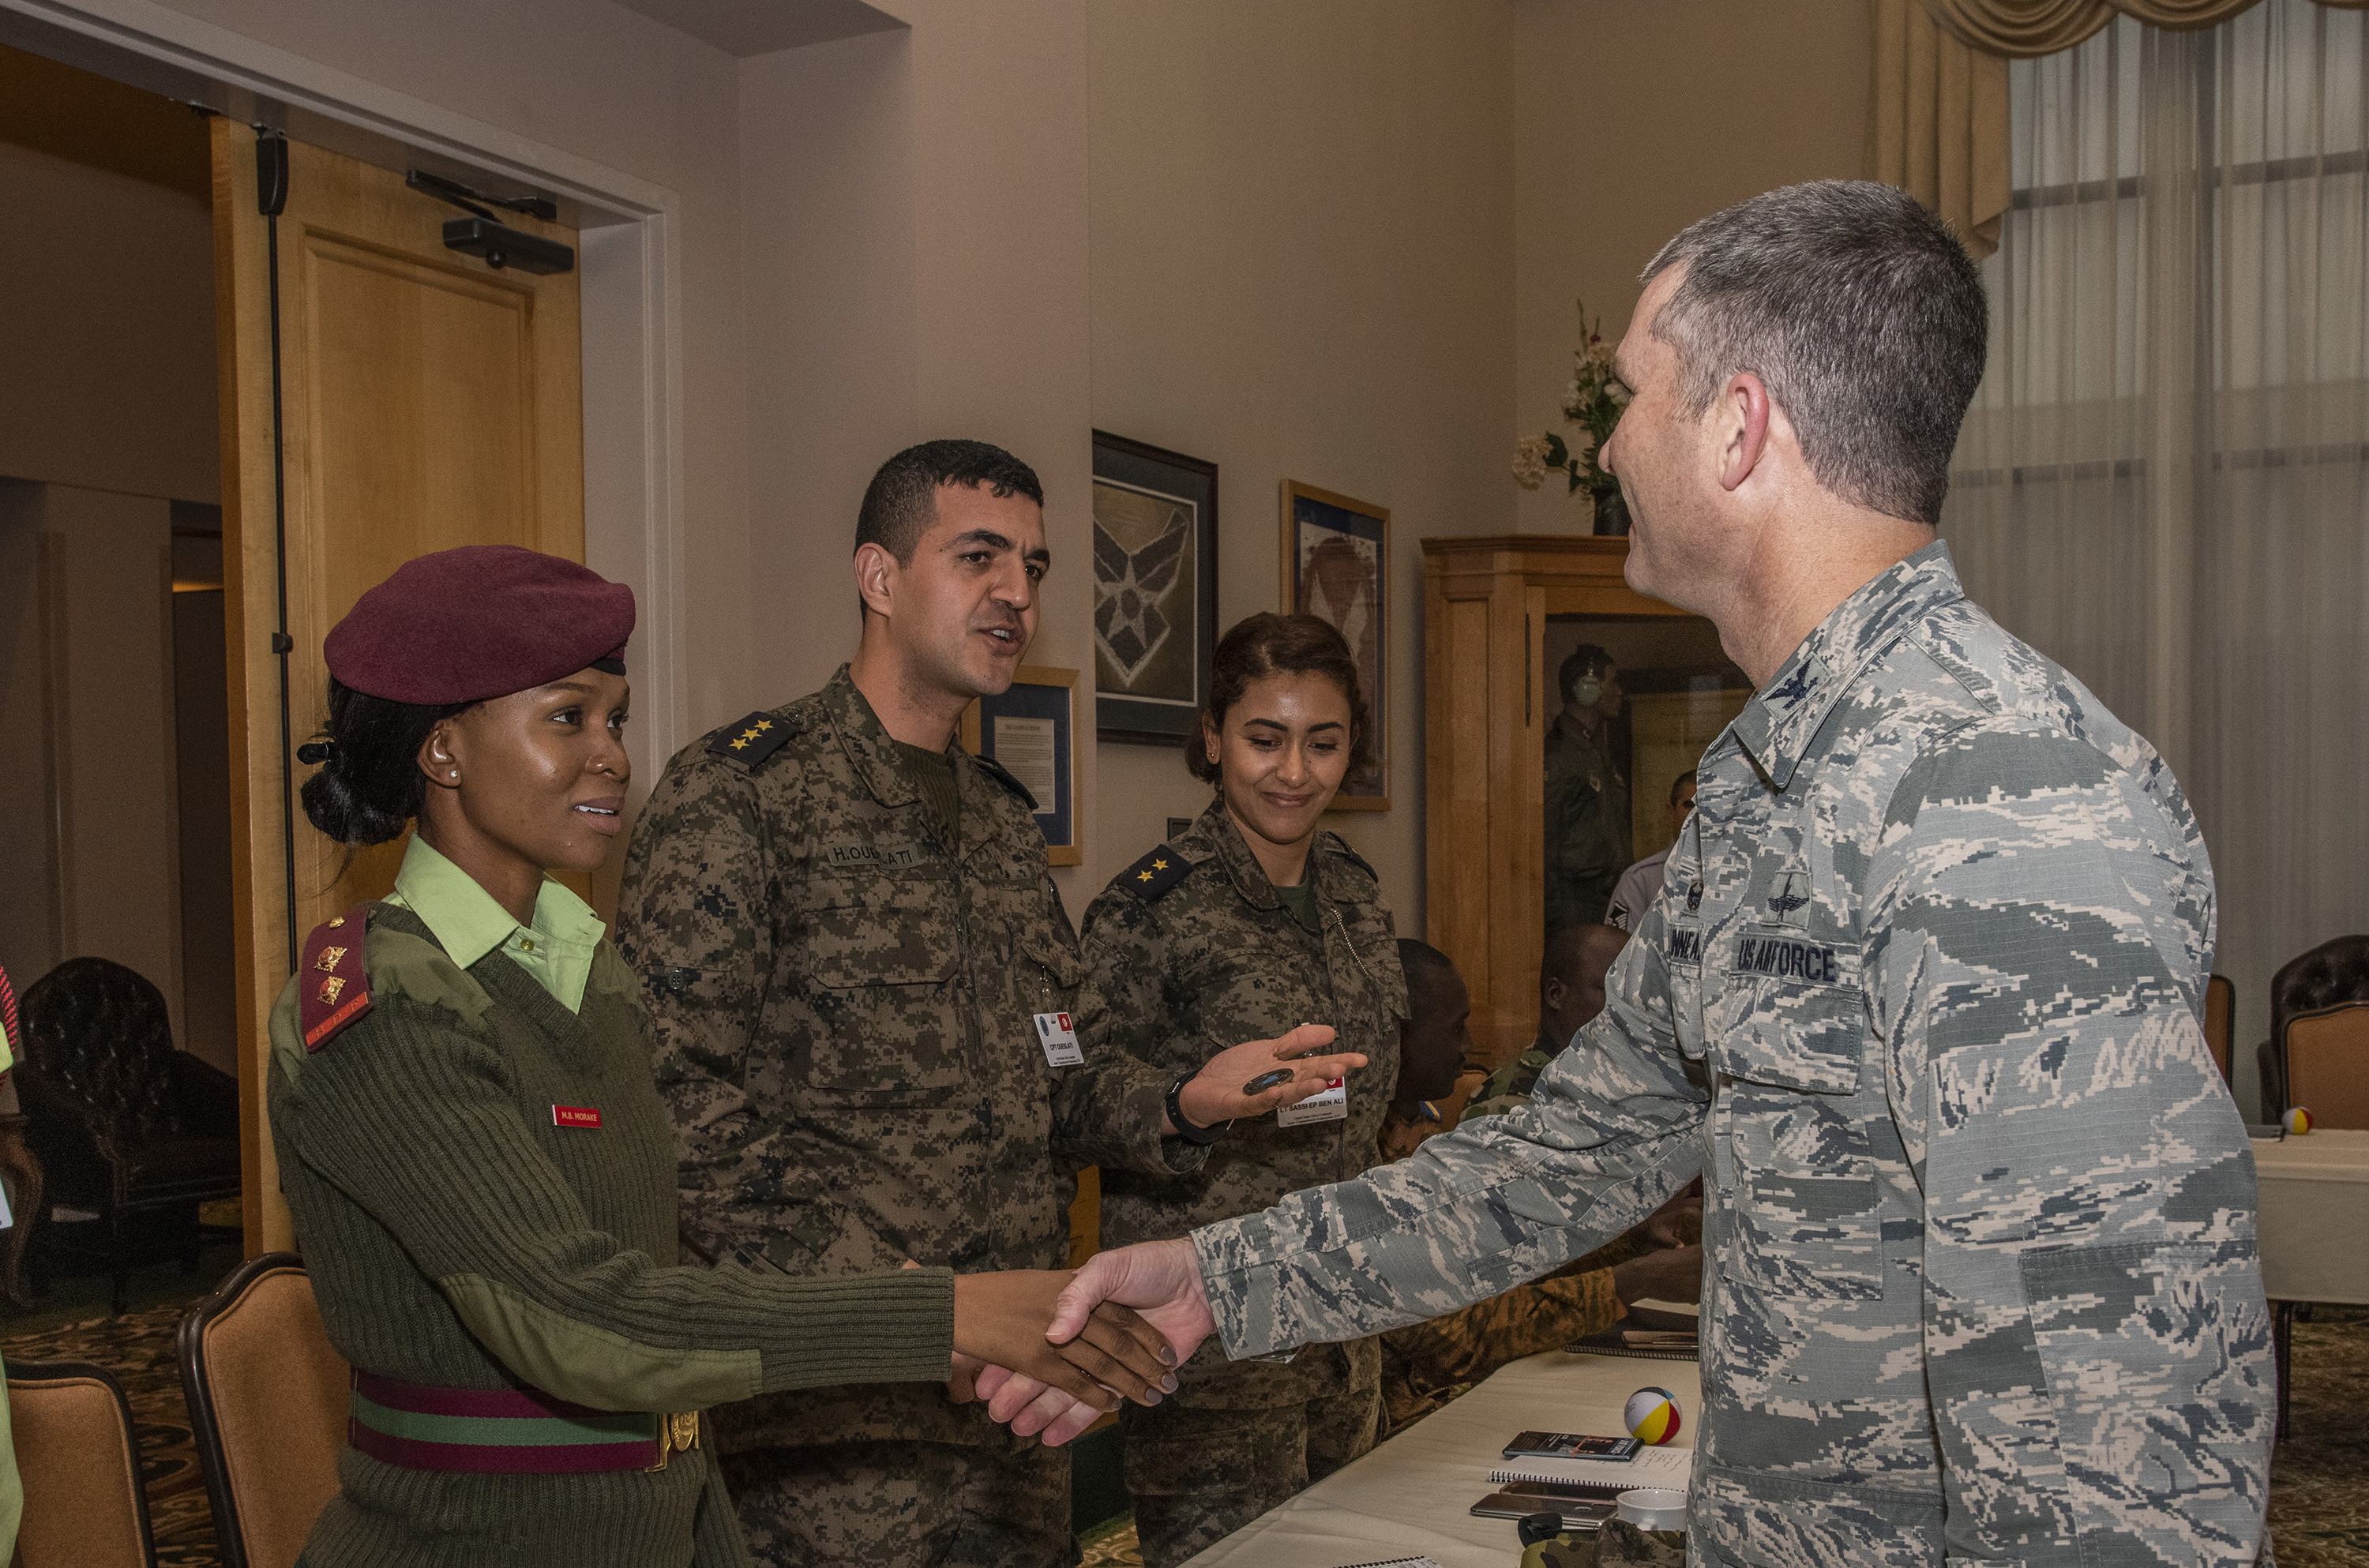 Botswana Defense Force Lt. Matshidiso Morake receives a coin from Col. Harold Linnean, 960th Cyberspace Wing vice commander duing a visit to Joint Base San Antonio-Lackland, Texas, Feb. 28.